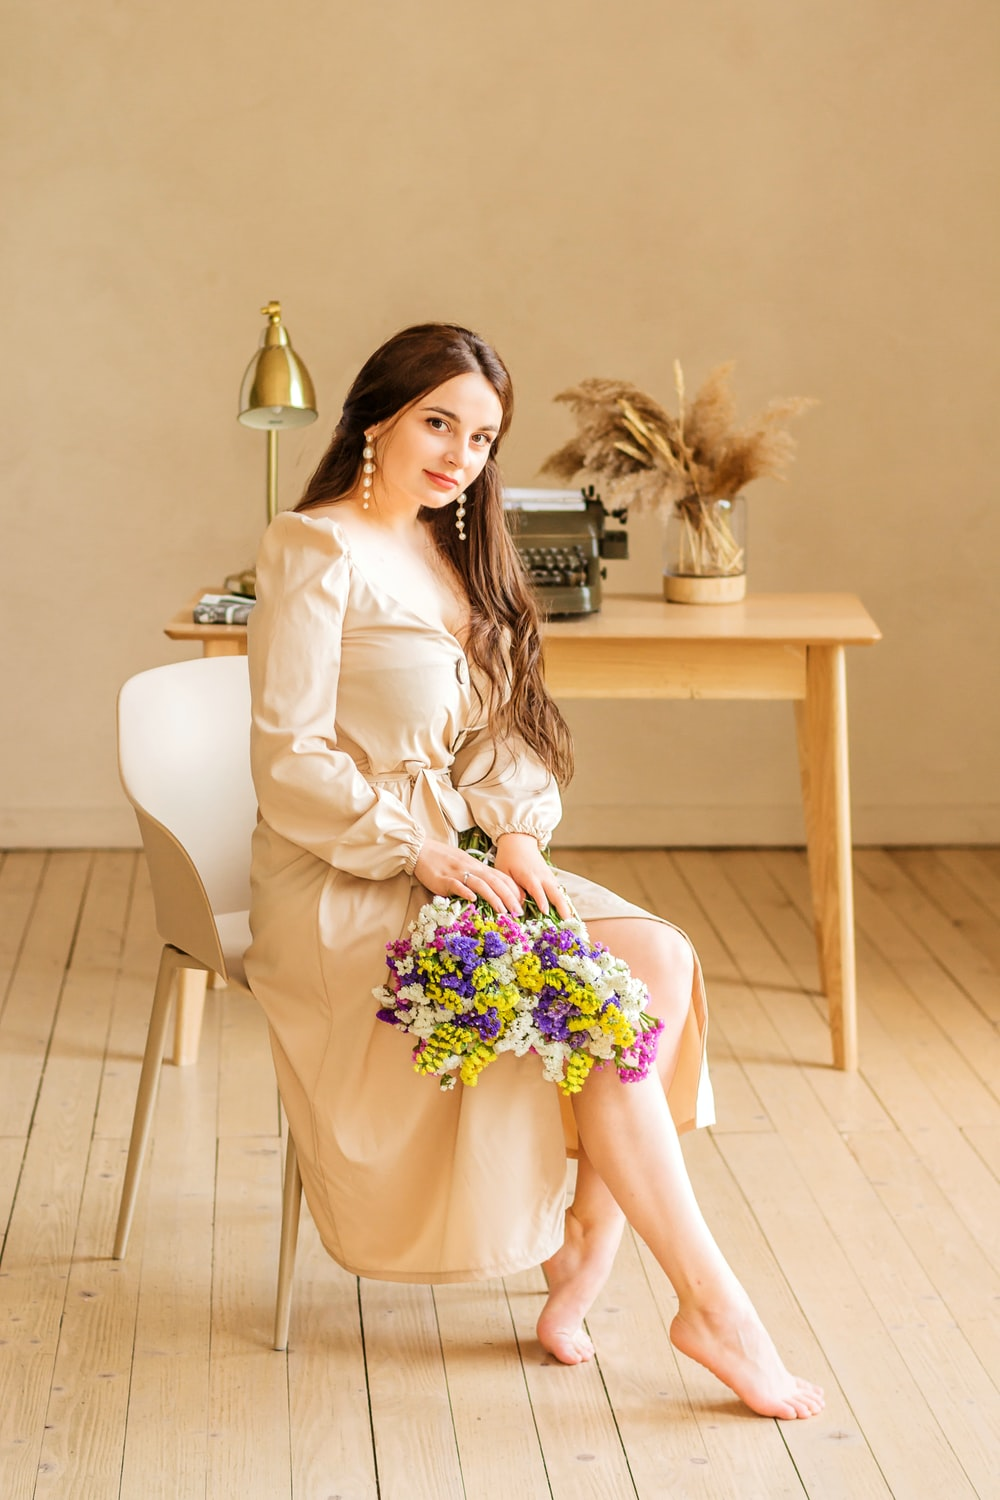 barefooted woman wearing white long-sleeved dress sitting on chair near rectangular beige wooden table